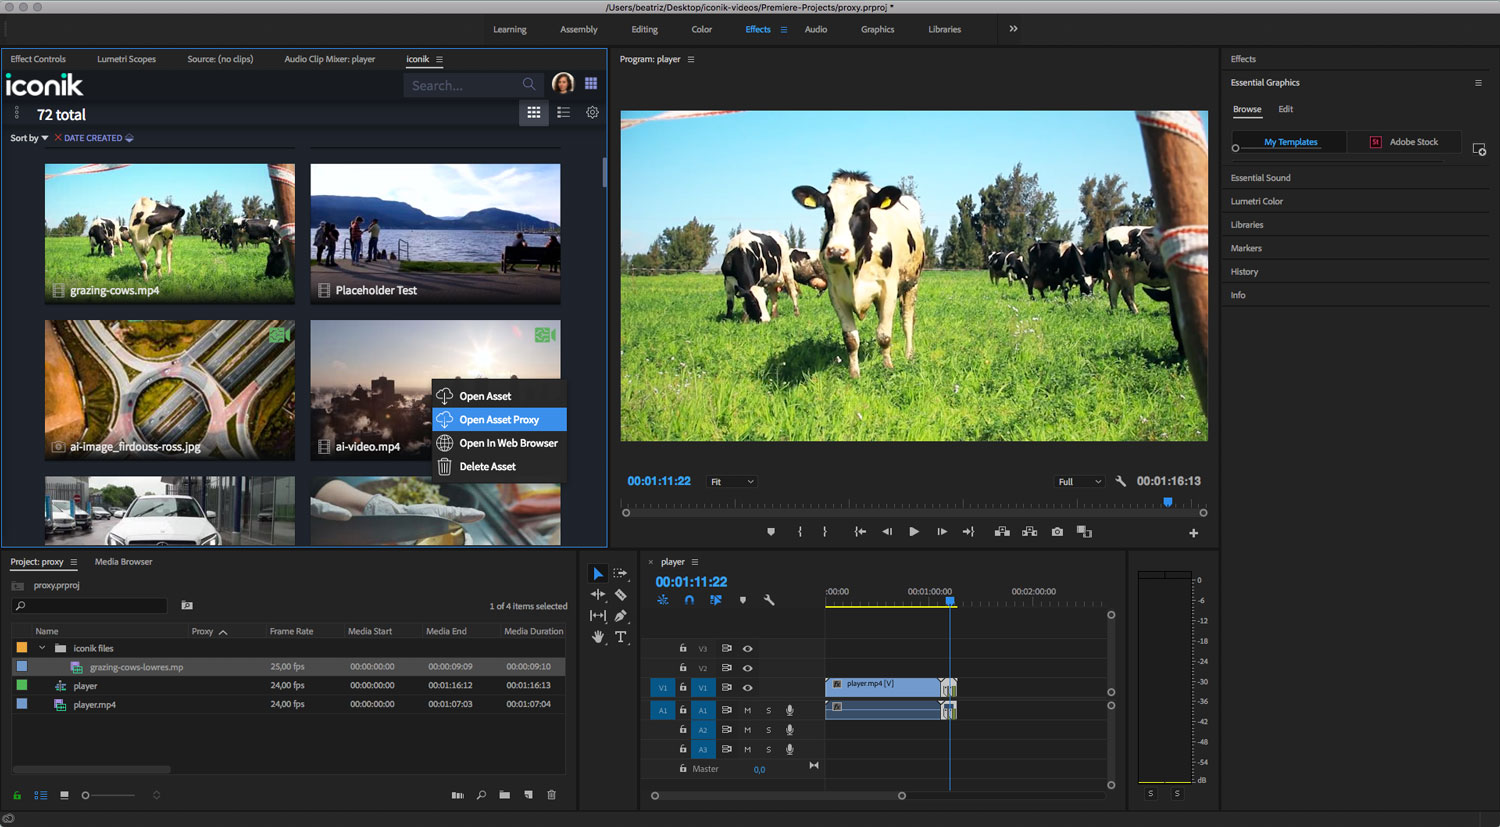 image from Cantemo to Showcase Latest Integrations for the Adobe Video Tools with iconik, the AI-Enabled Video Management Hub, at IBC 2018